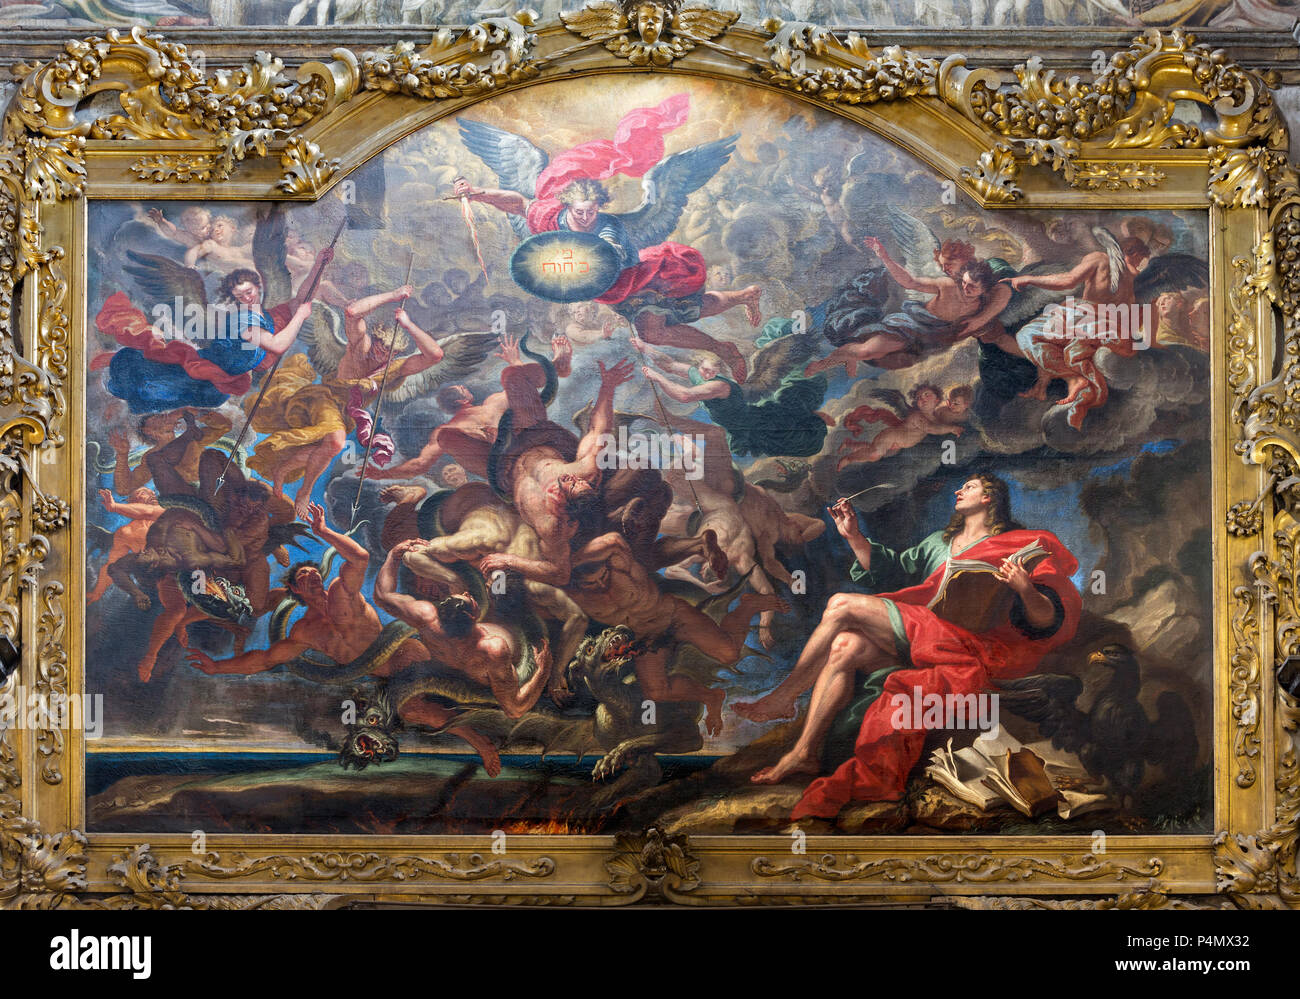 PARMA, ITALY - APRIL 15, 2018: The painting of The Battle of the Angels after Apocalypse of St. John in church Chiesa di San Giovanni Evangelista - Stock Image